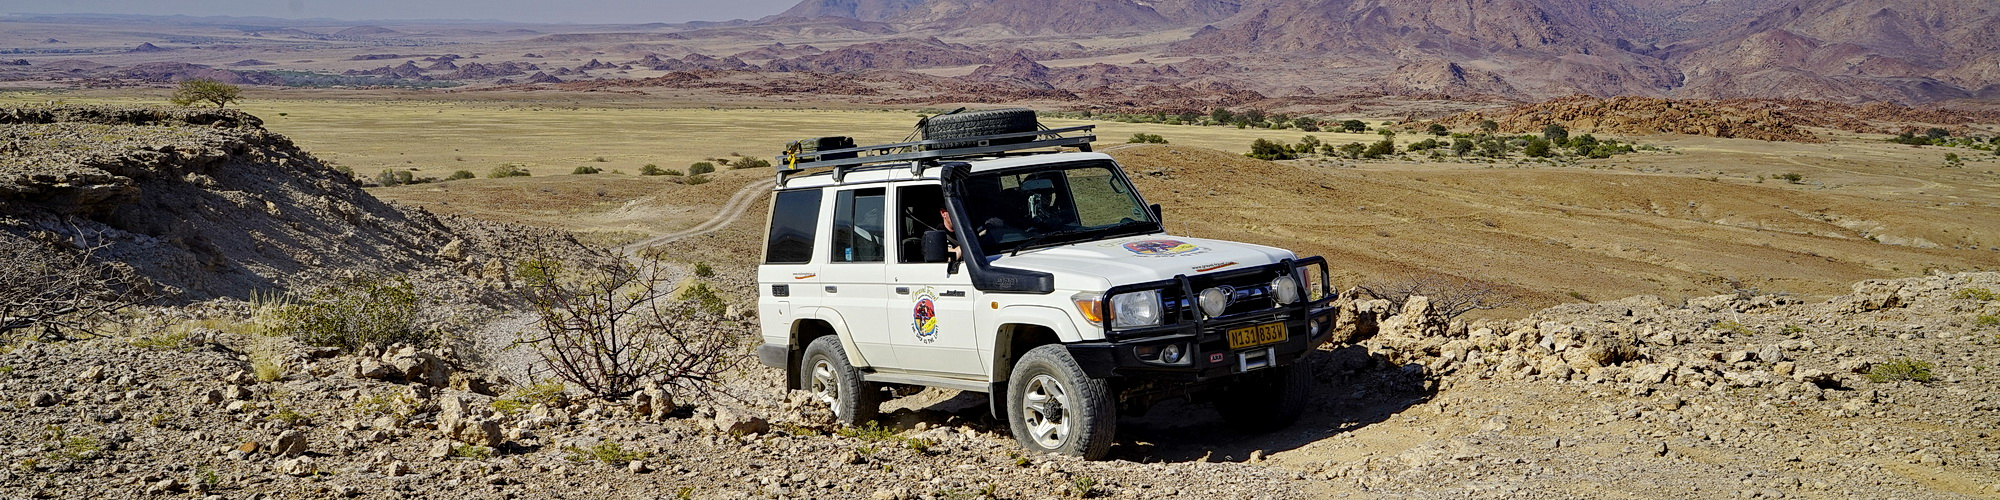 namibia-offroad-011.jpg